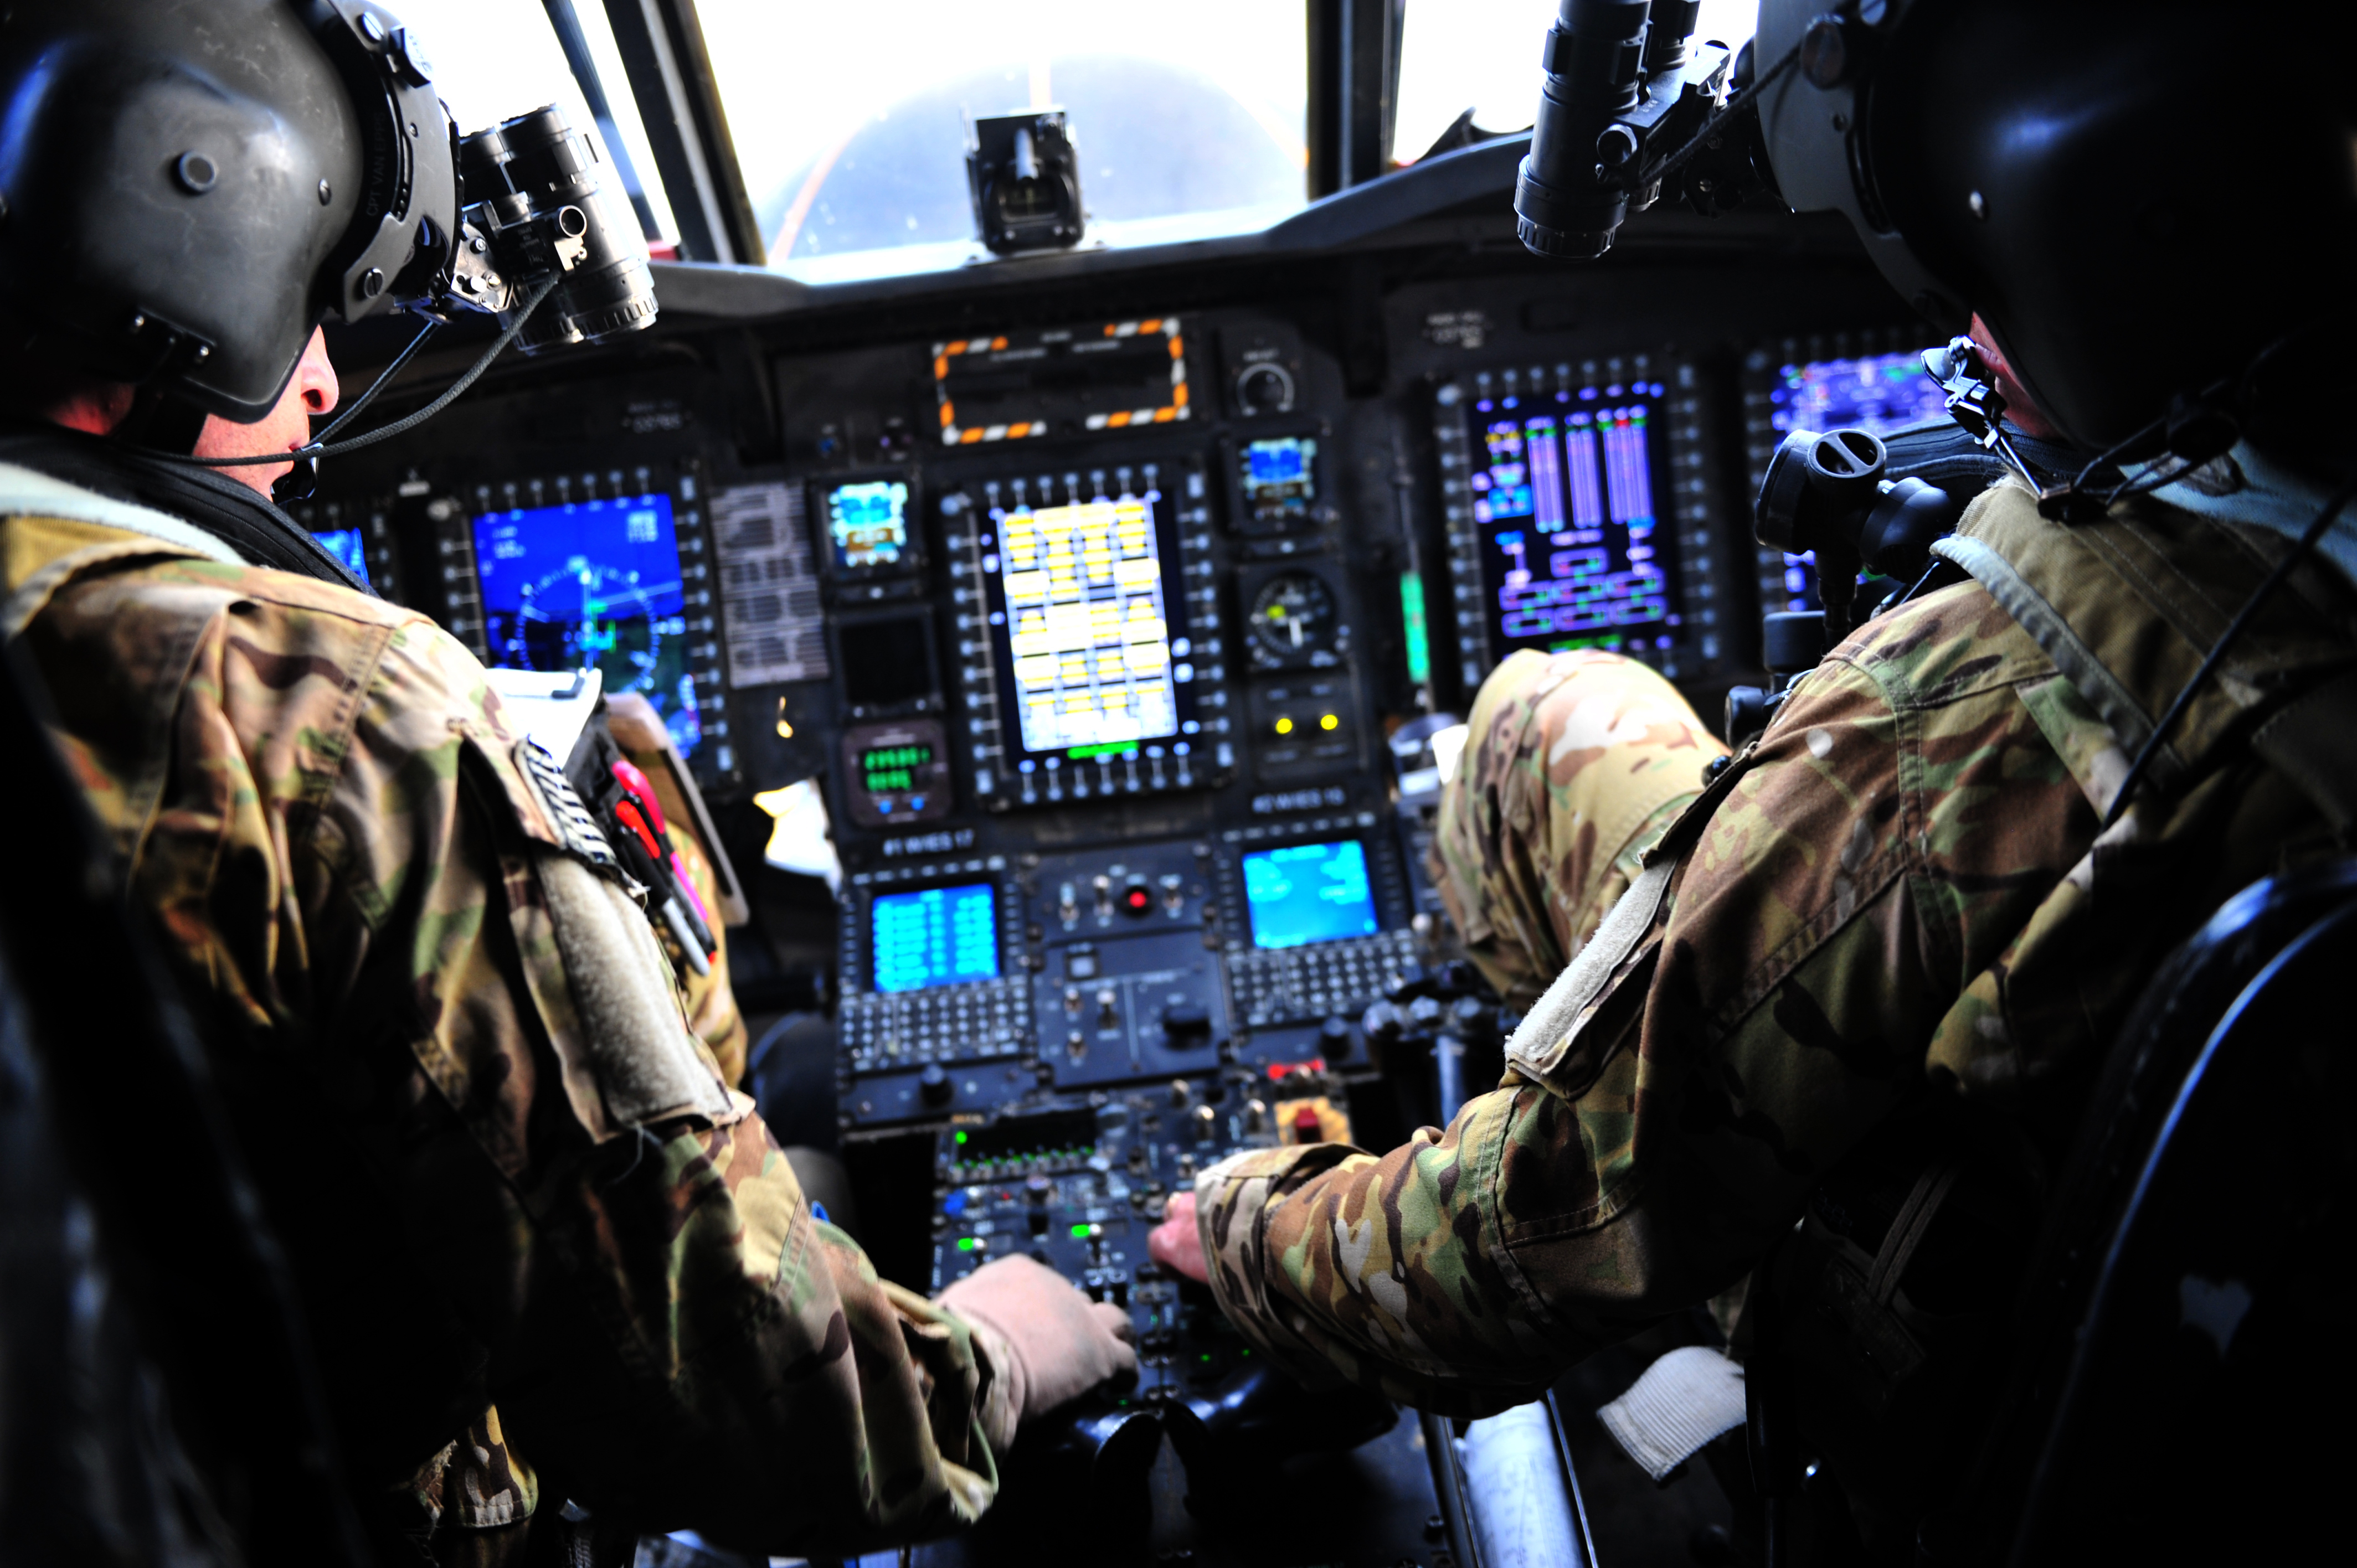 army helicopter pilots with File U S  Army Mh 47g Chinook Helicopter Pilots Perform Preflight Operations During Emerald Warrior 2013 At Hurlburt Field  Fla   April 29  2013 130429 F Mn146 197 on File U S  Army MH 47G Chinook helicopter pilots perform preflight operations during Emerald Warrior 2013 at Hurlburt Field  Fla   April 29  2013 130429 F MN146 197 furthermore 346887 also 85858232 besides File Army Air Corps Apache And RAF Chinook Helicopters Practice Deck Landingd Onboard HMS Illustrious MOD 45153197 likewise Flying Display Lca Tejas Mark 1 Aero.